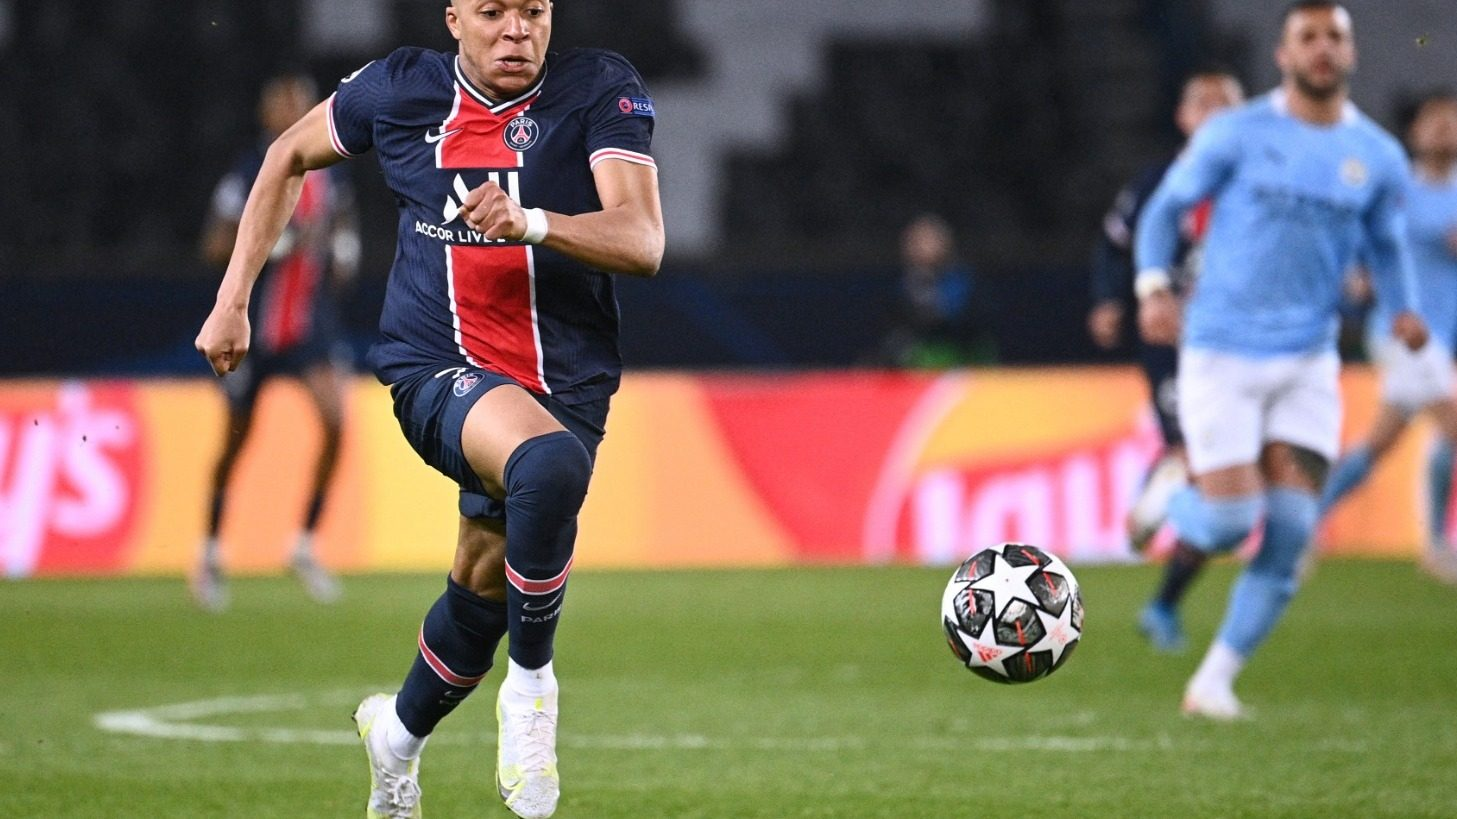 Man City vs PSG in UEFA Champions League semi-final second leg! Watch live  streaming and telecast in India